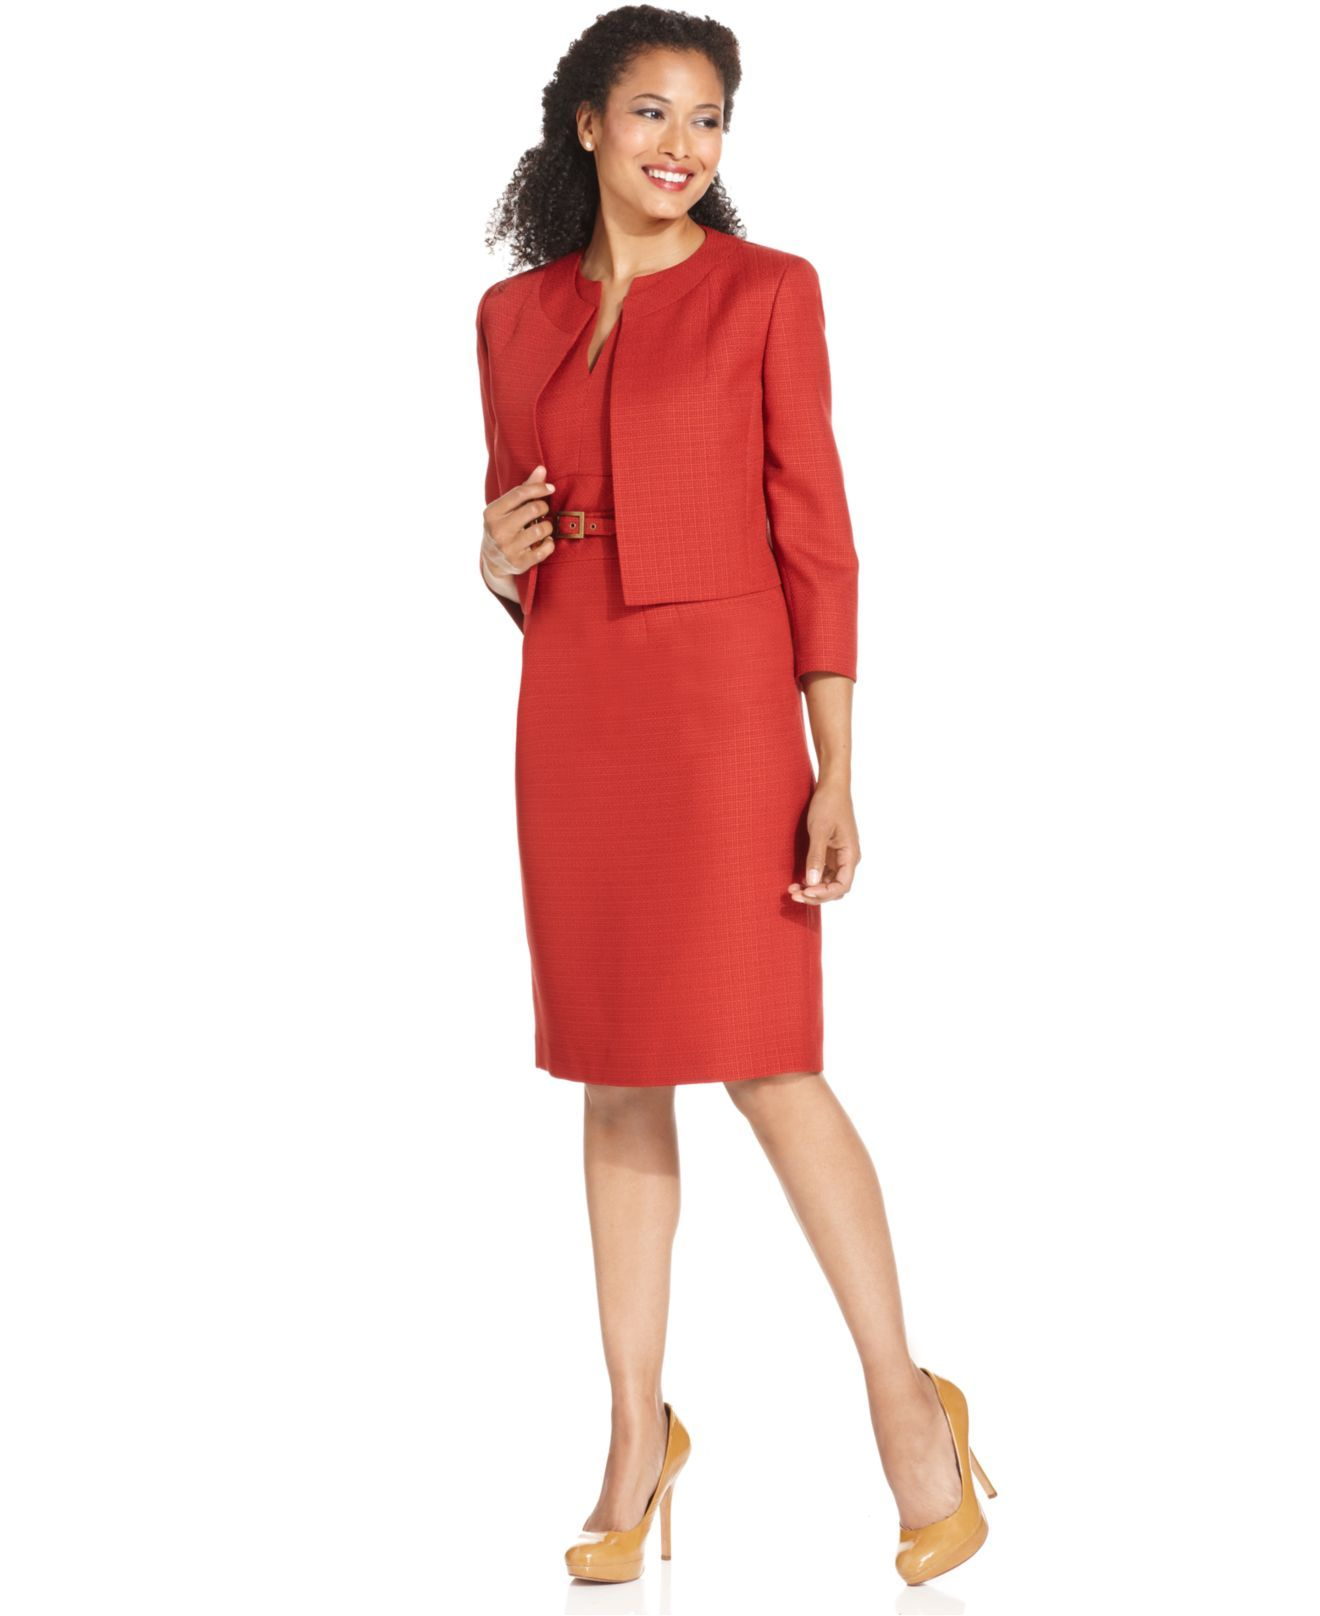 Kasper Suit, Three-Quarter-Sleeve Tweed Jacket & Sheath Dress ...